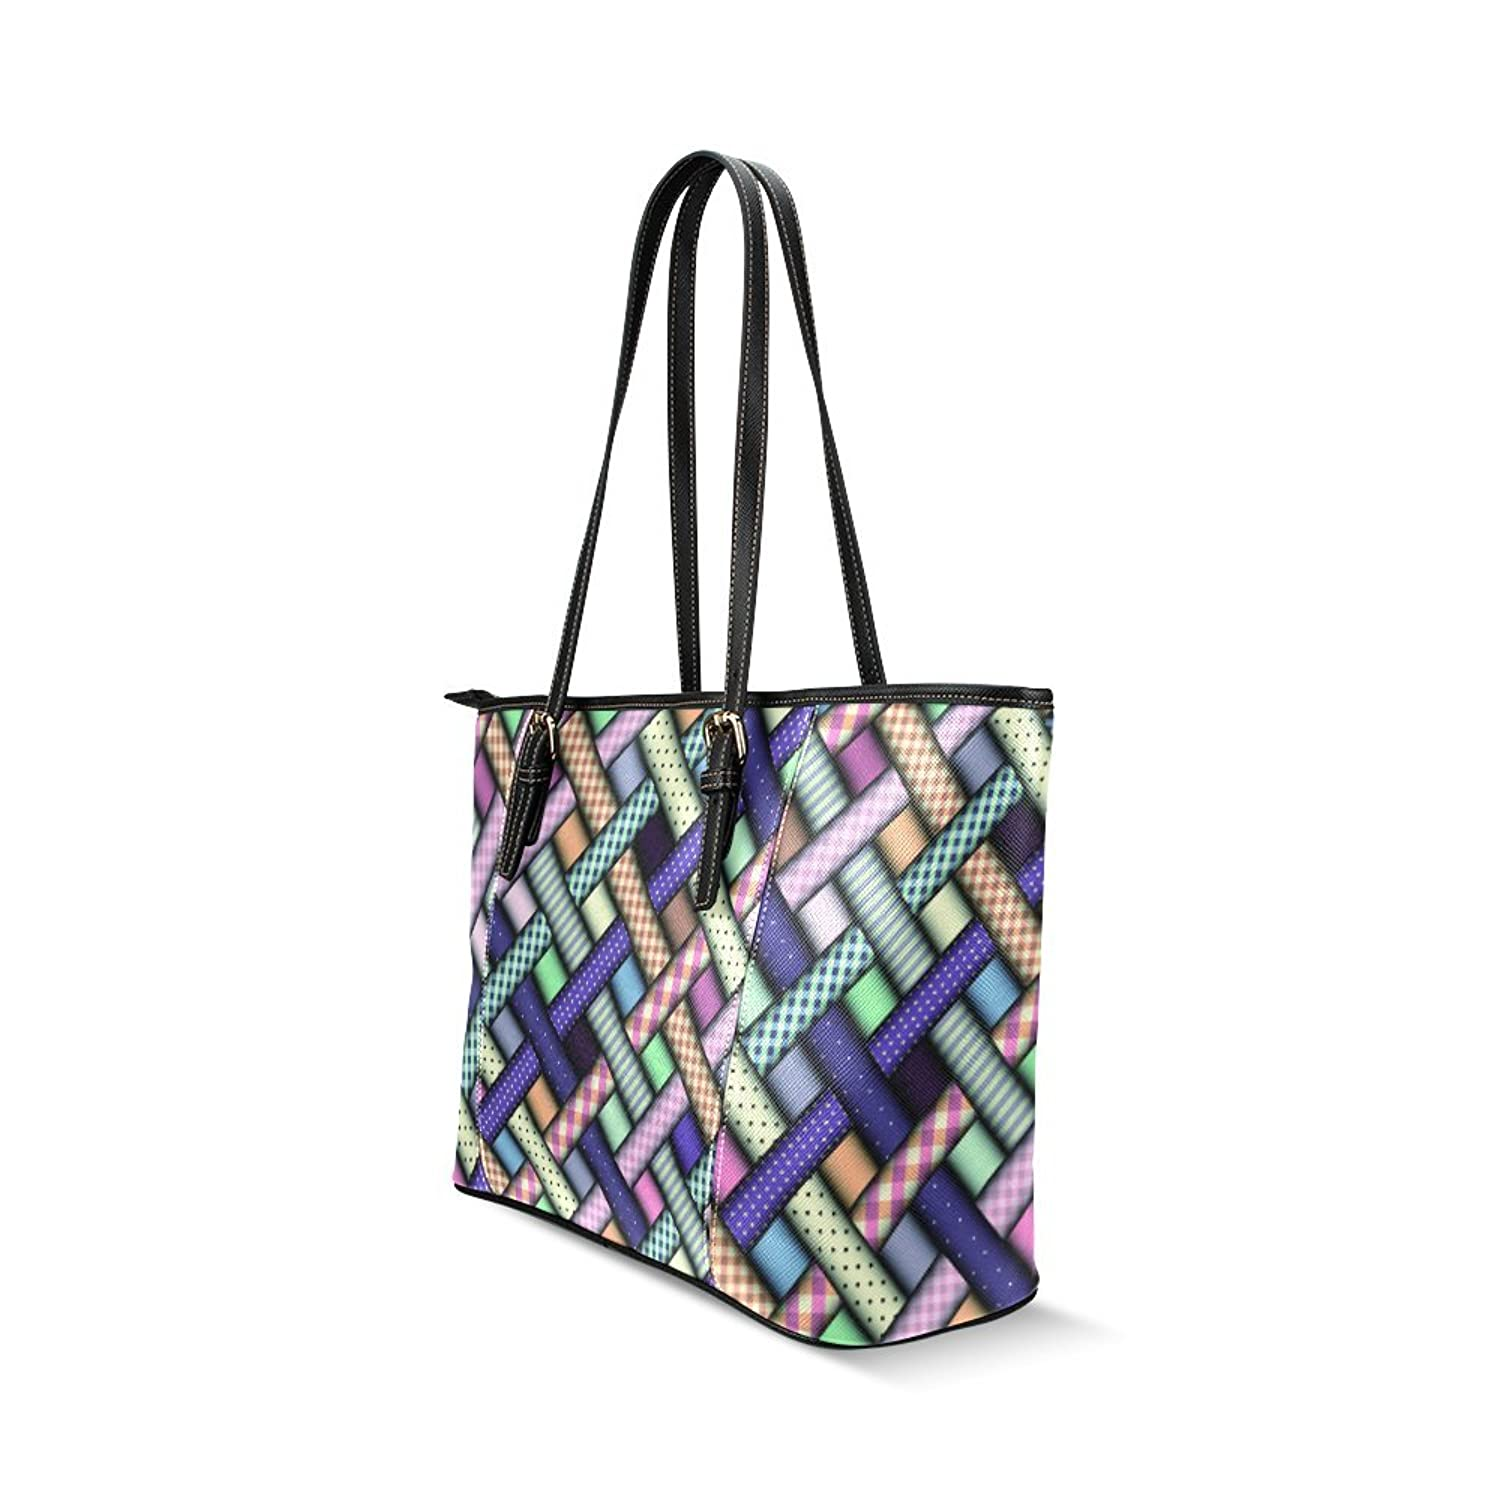 Abstract Plaid Diagon Custom PU Leather Large Tote Bag/Handbag/Shoulder Bag for Fashion Women /Girls